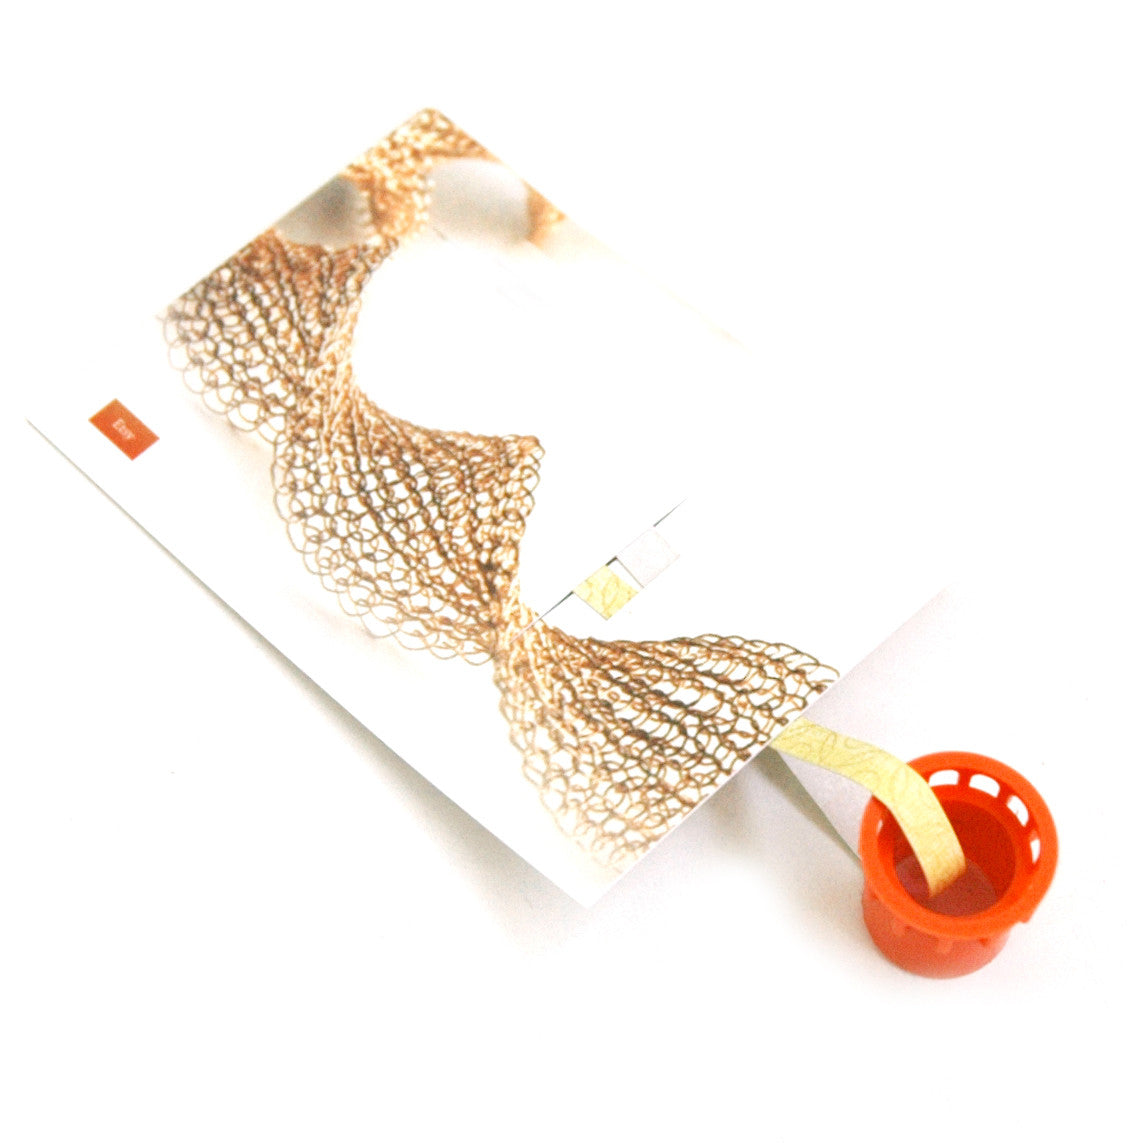 Small wire crochet loom , ISK tool , wire crochet small frame ...